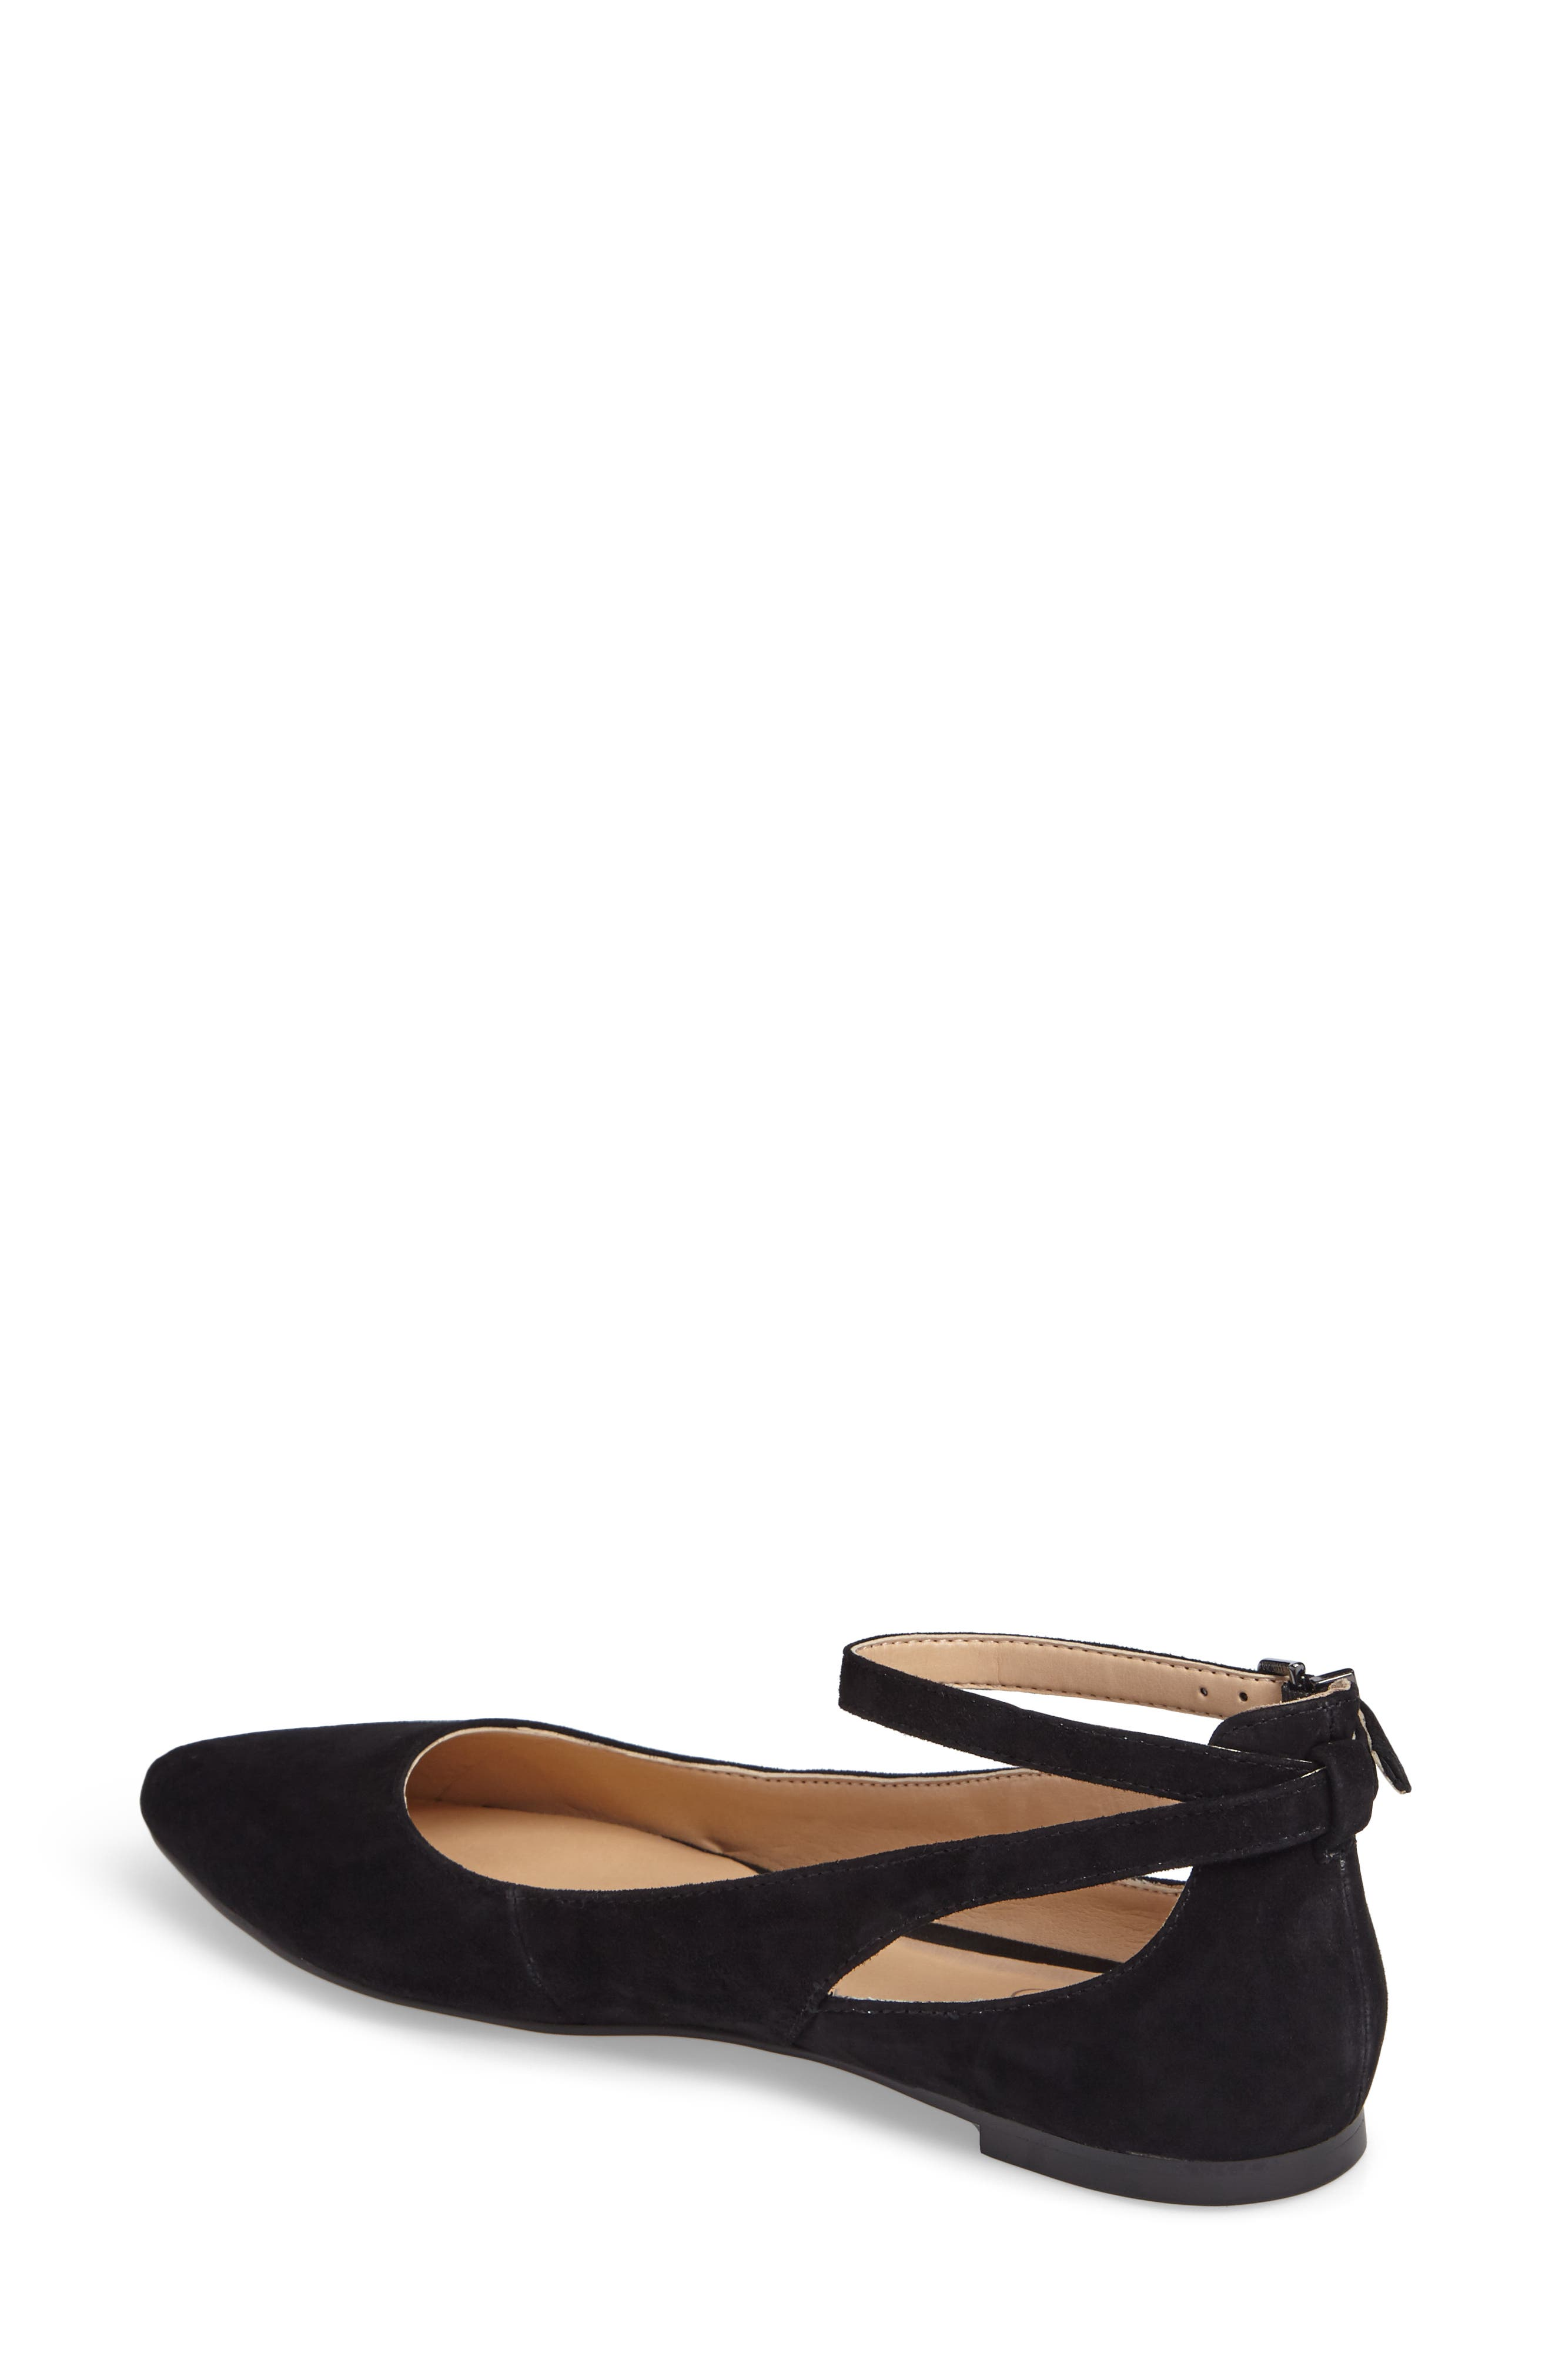 Sylvia Ankle Strap Flat,                             Alternate thumbnail 2, color,                             002